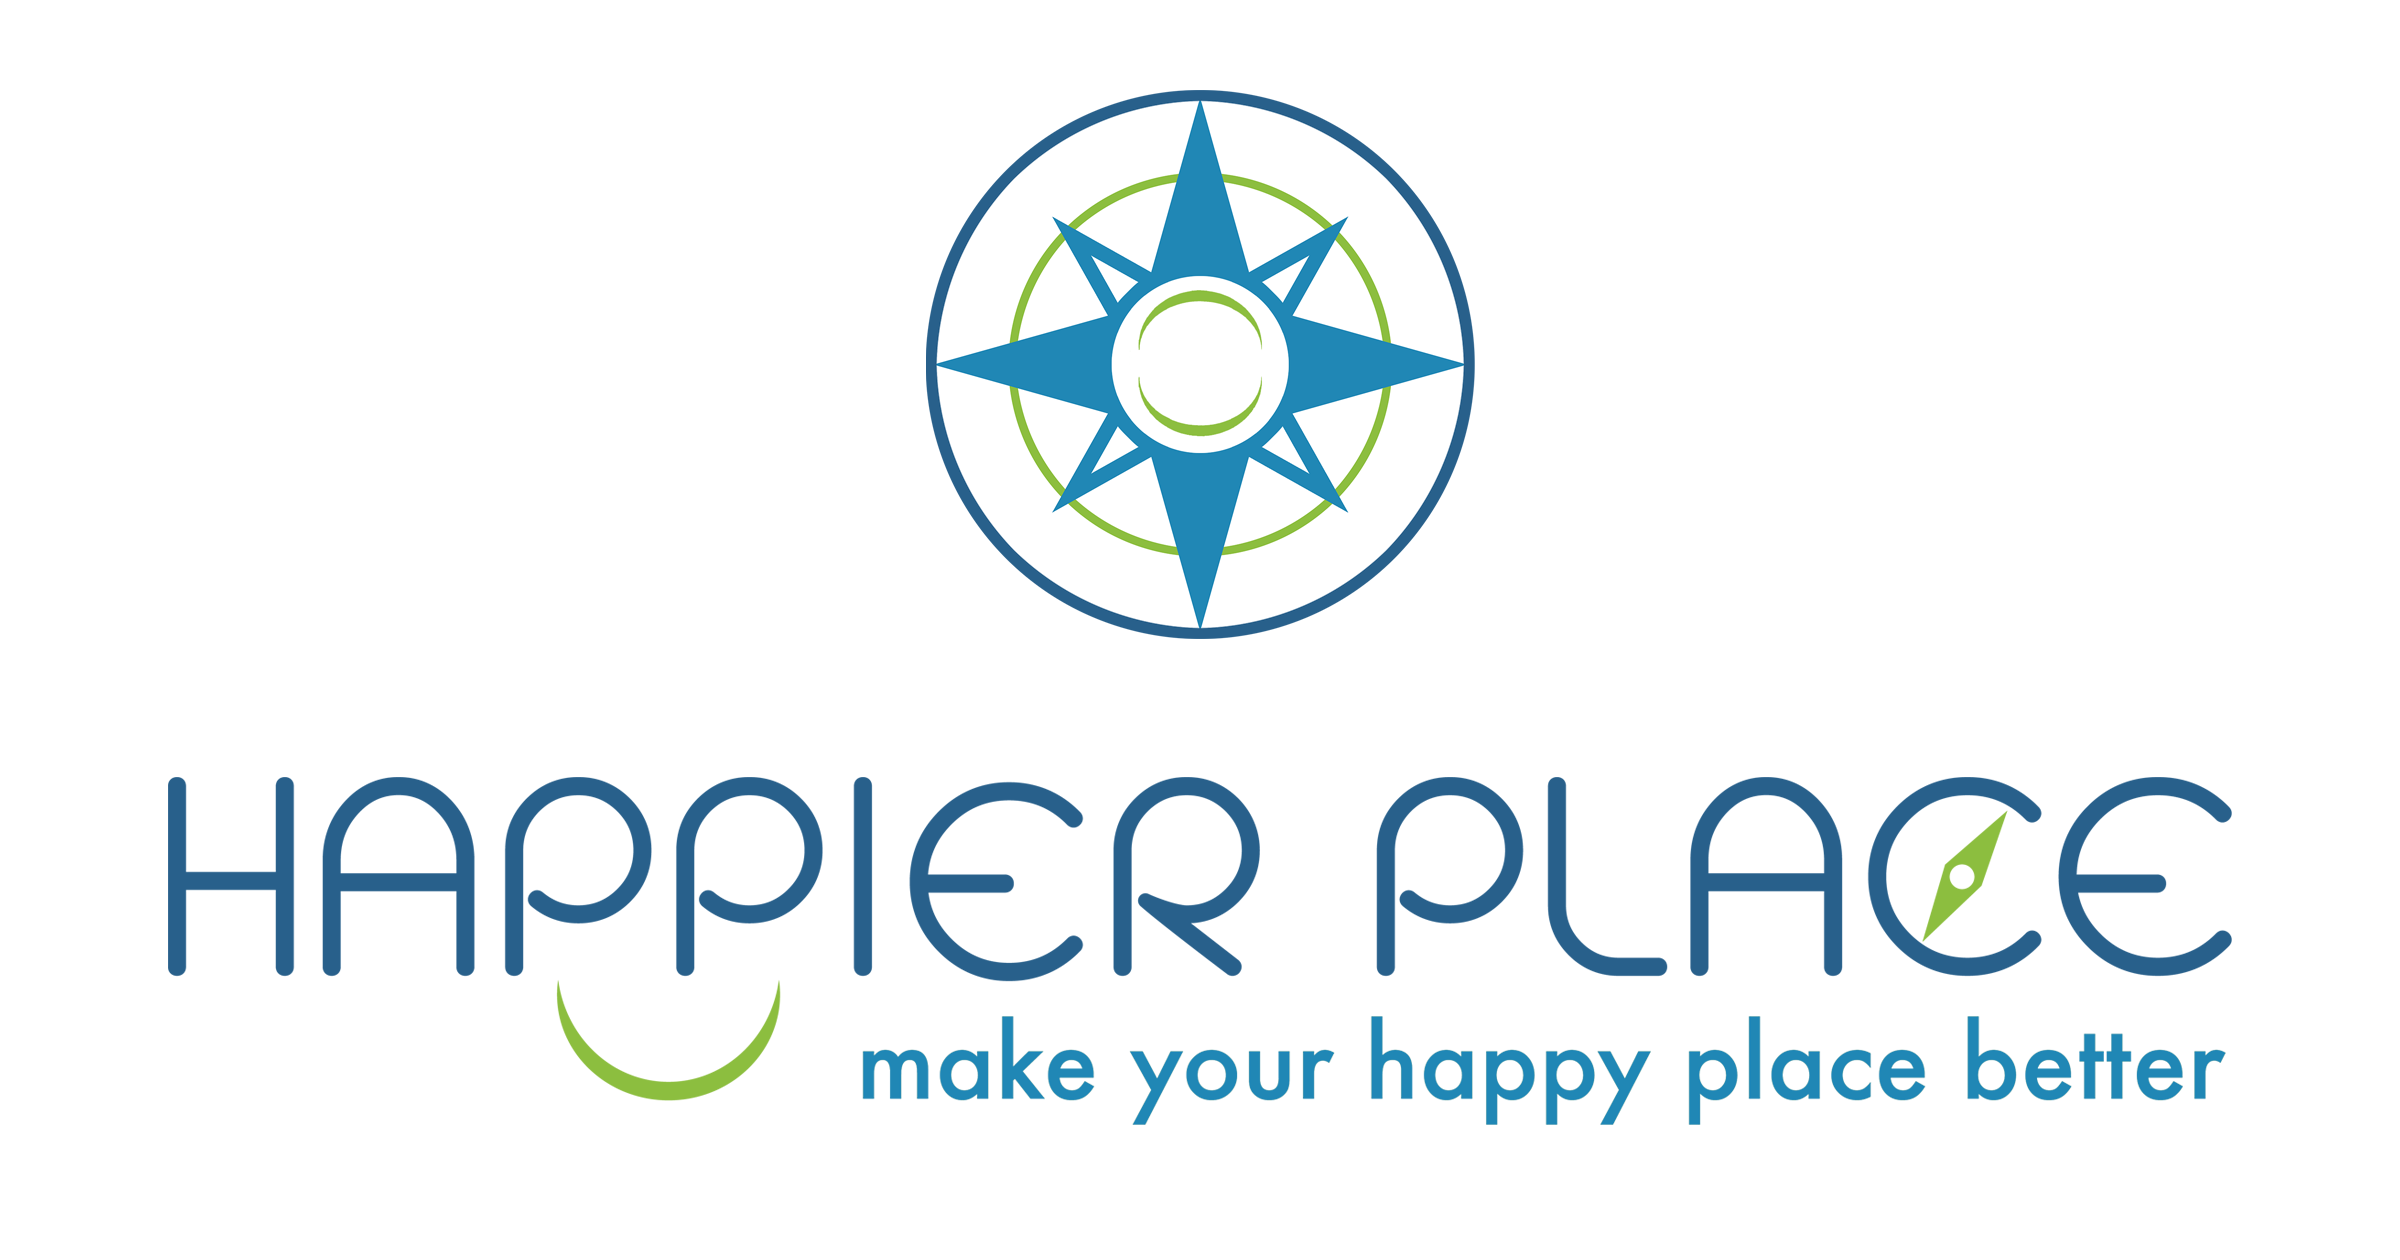 Happier Camper For Sale >> Happier Place - Make Your Happy Place Better!